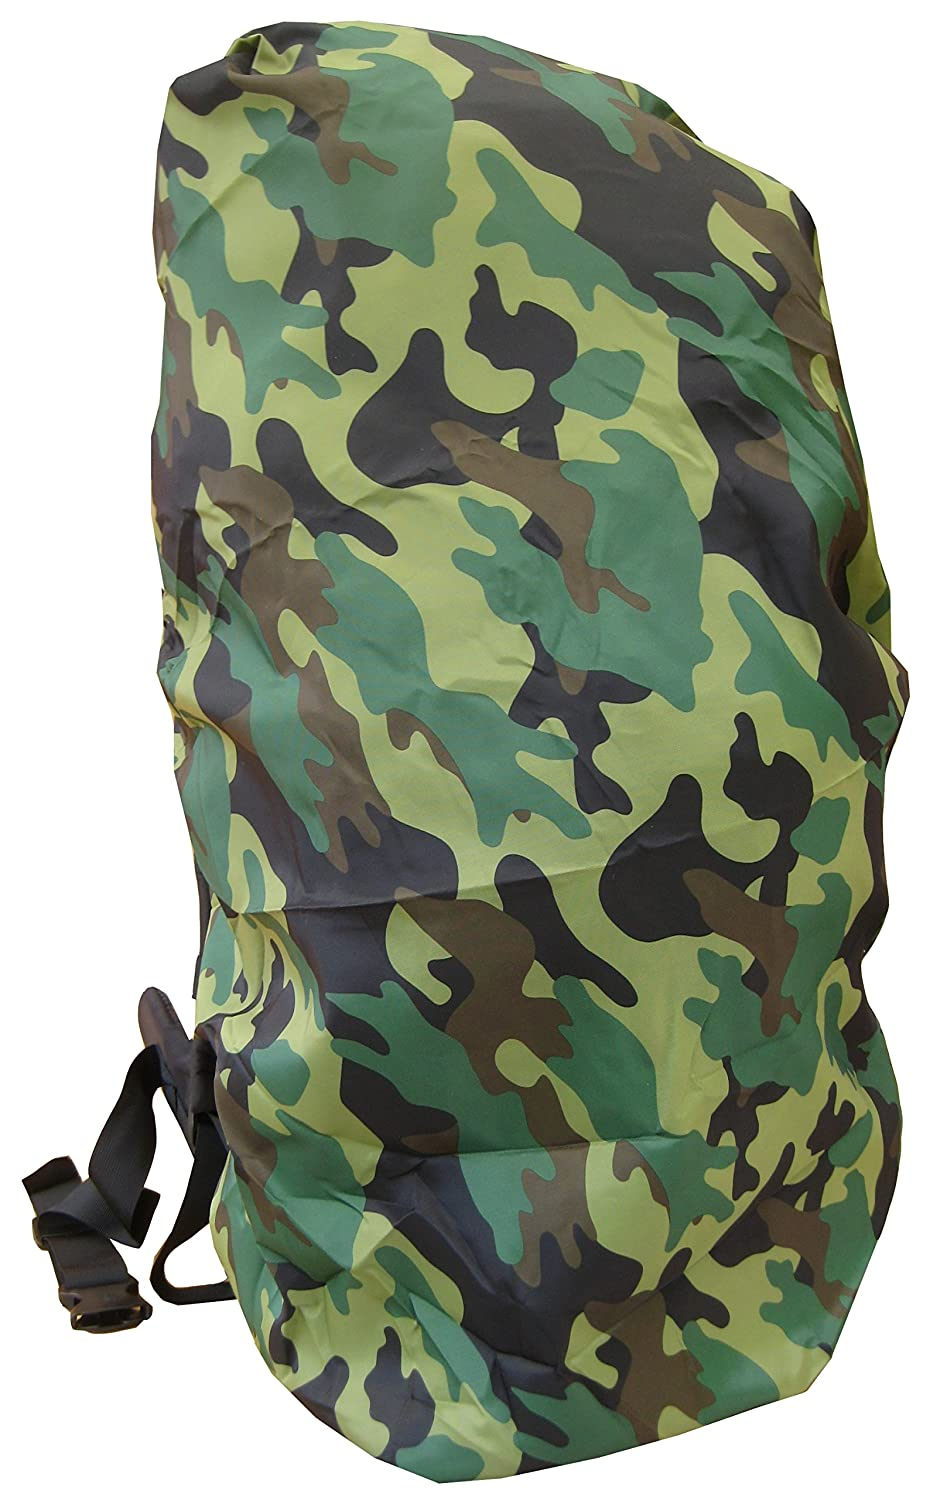 Rucksack Rain Army Camo Waterproof Bag Military Cover Backpack Combat Woodland DPM Camo Zip Zap Zooom